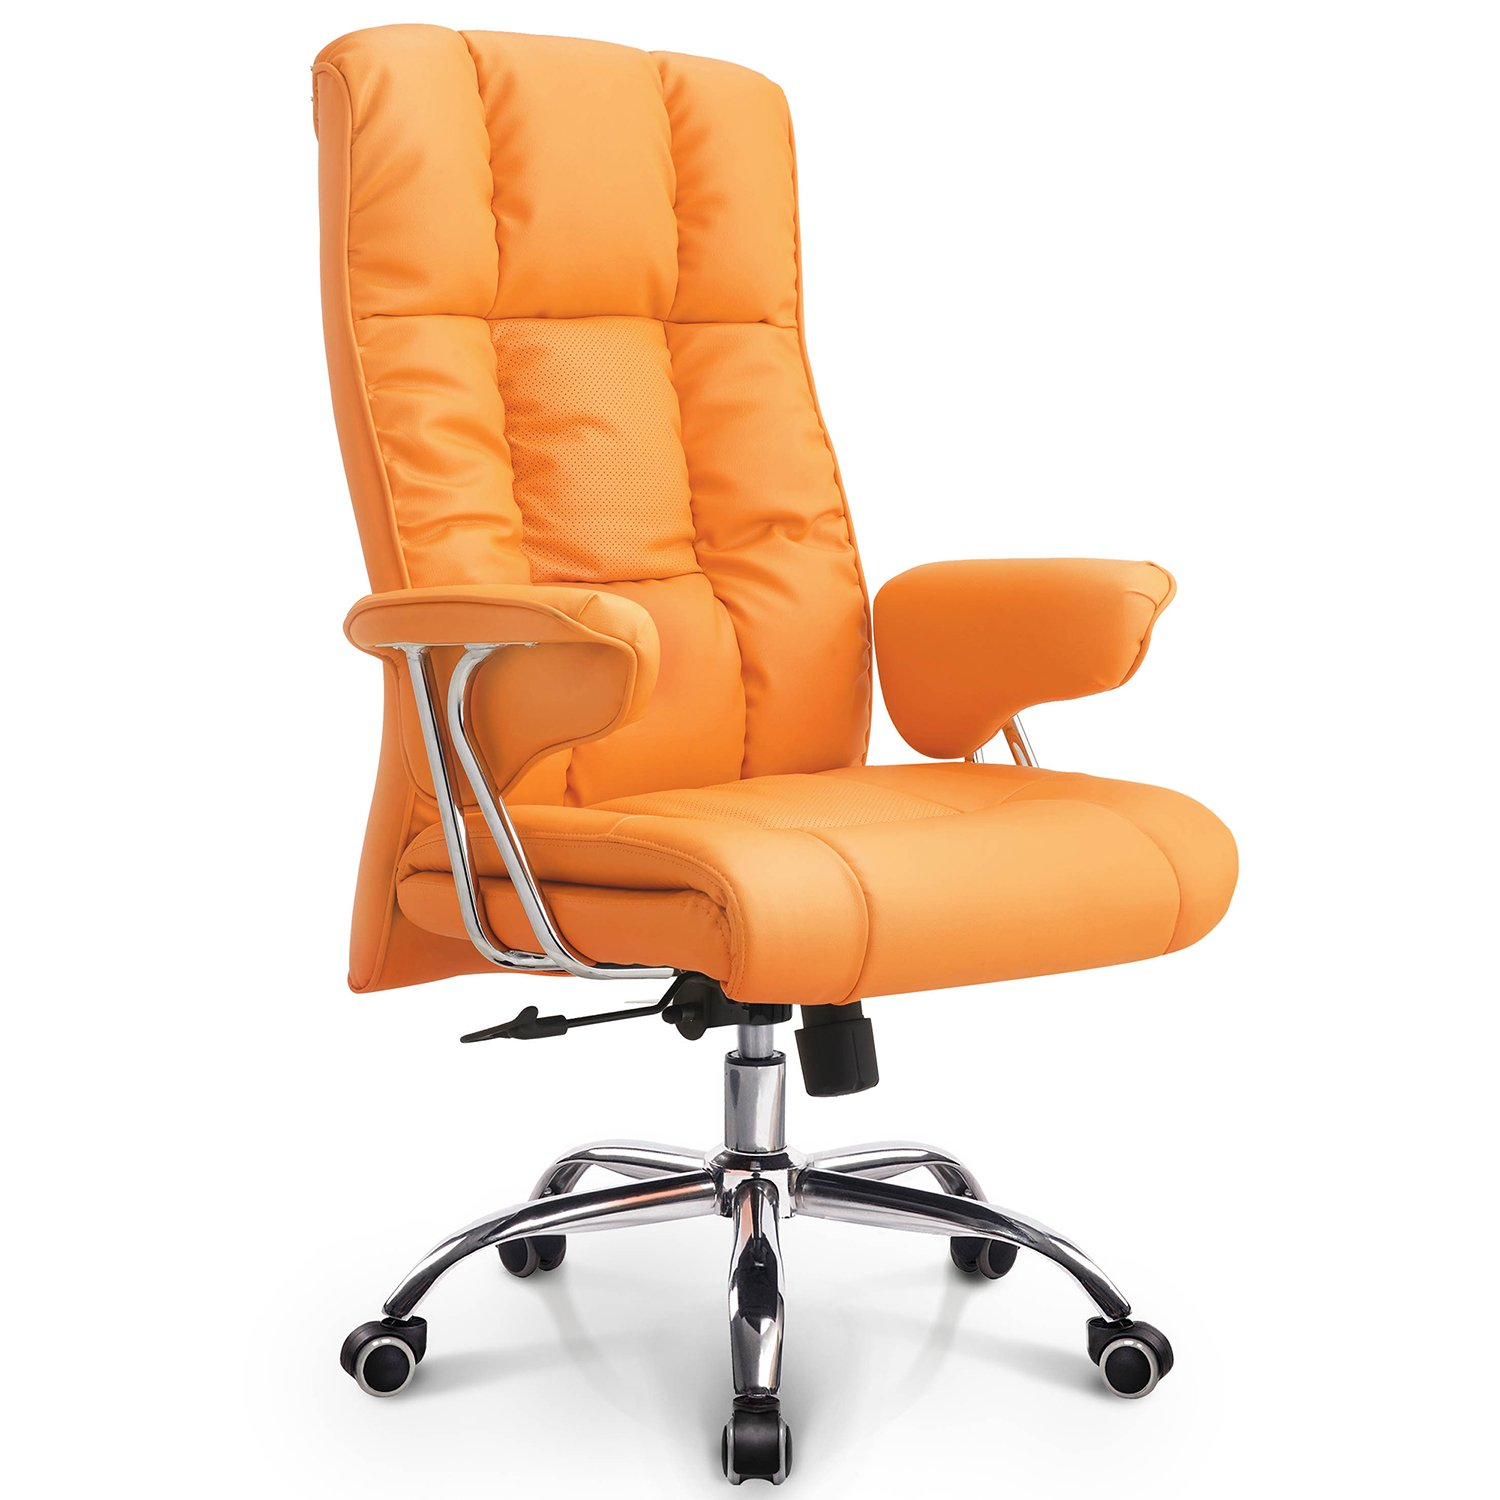 NEO CHAIR Office Chair Computer Desk Chair Gaming - Ergonomic High Back Cushion Lumbar Support with Wheels Comfortable Orange Upholstered Leather Racing Seat Adjustable Swivel Rolling Home Executive